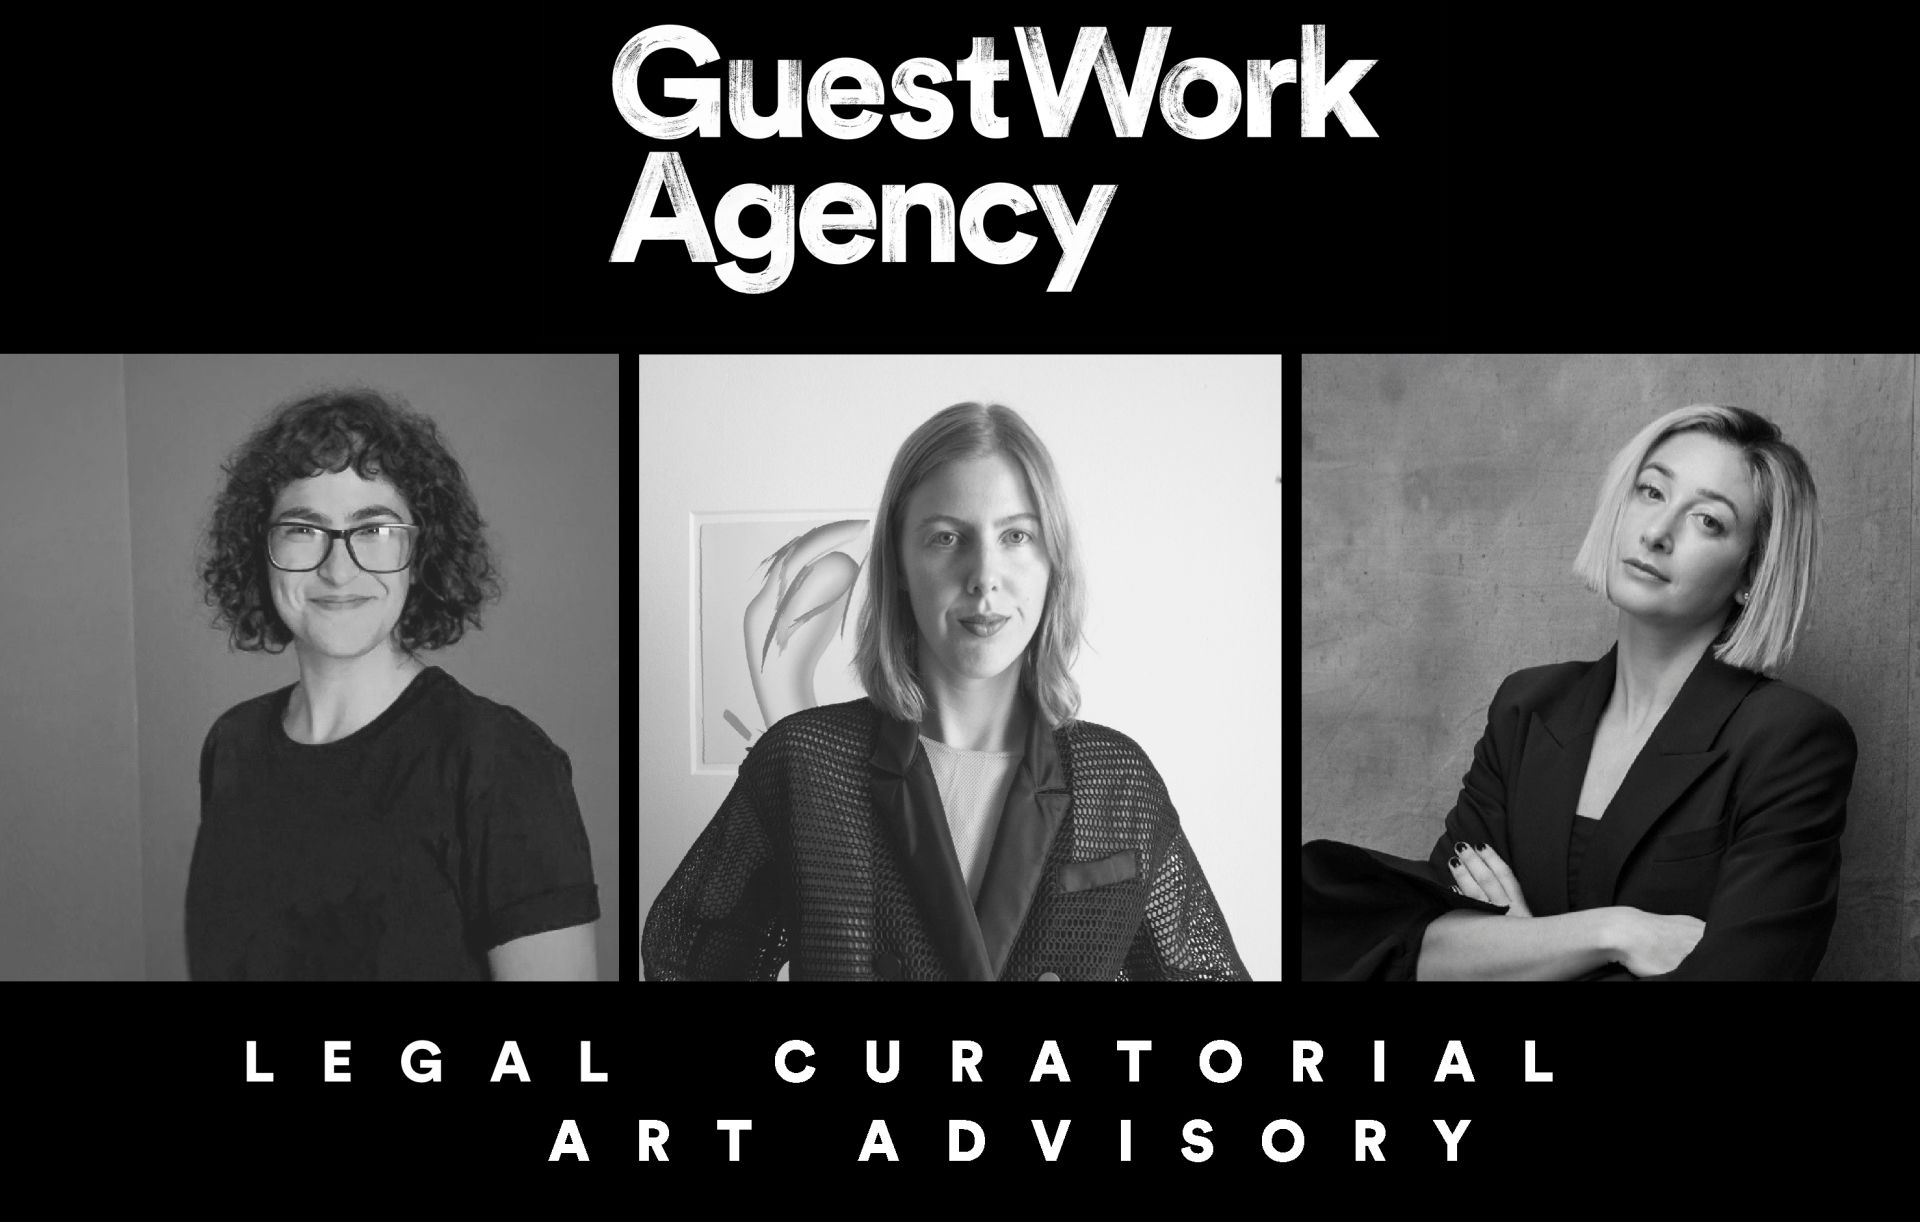 Guest Work Agency image banner